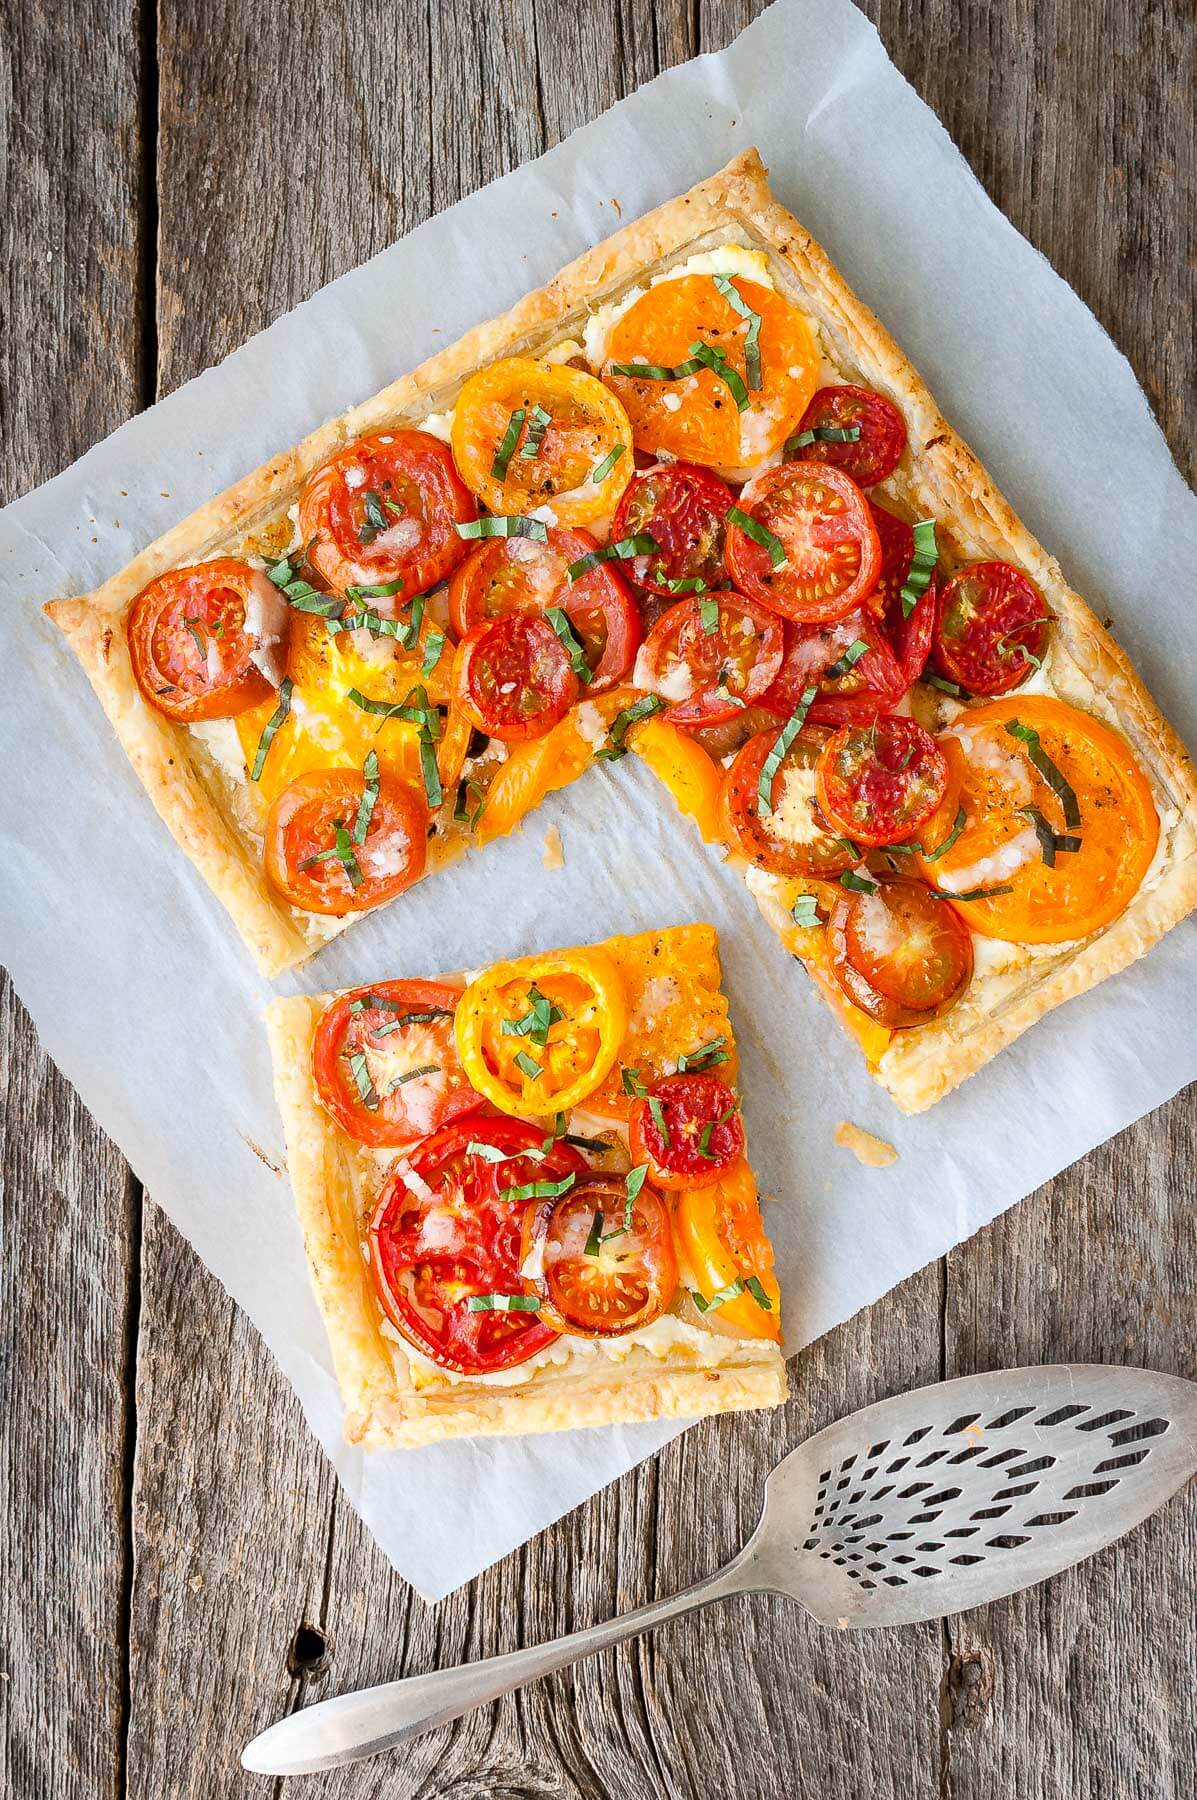 Tomato tart with goat cheese and caramelized onions on a piece of parchment paper.